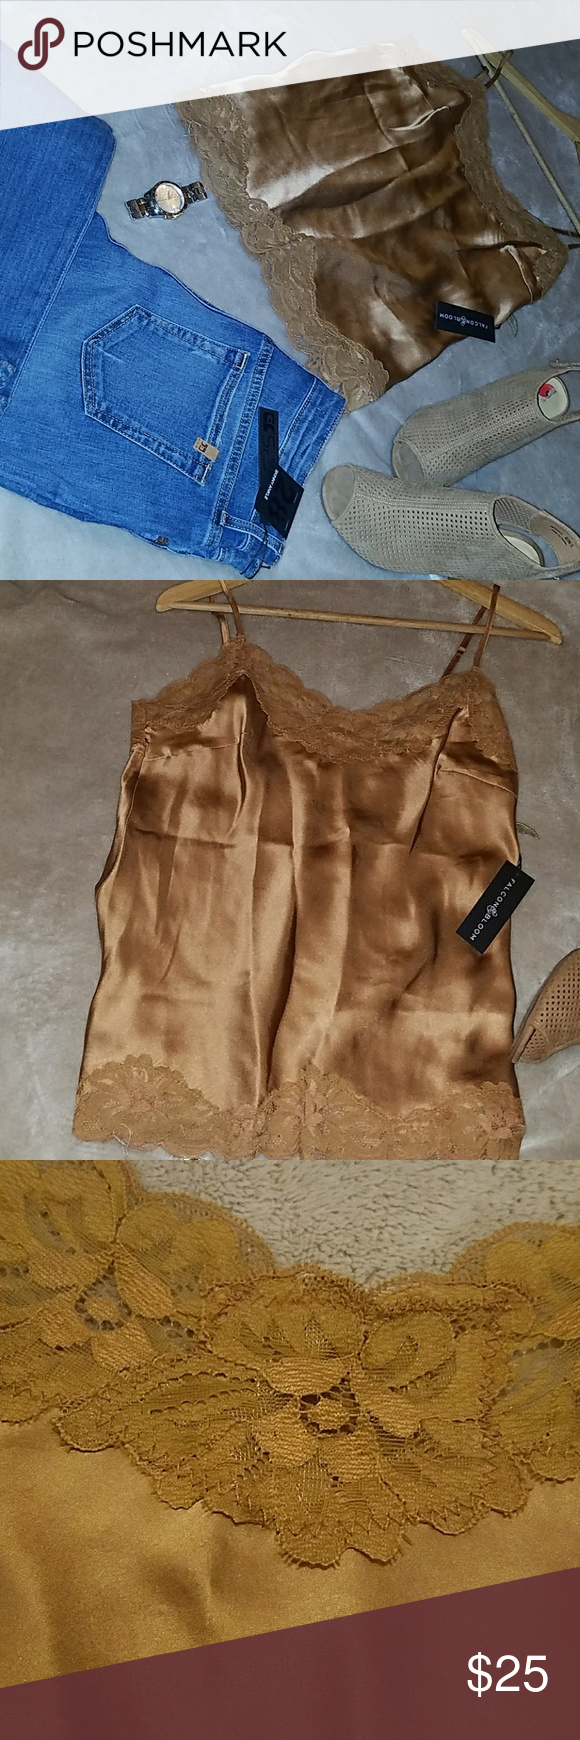 Selling this New Daisy camisole blouse on Poshmark! My username is: rosa2603. #shopmycloset #poshmark #fashion #shopping #style #forsale #falcon bloom #Tops